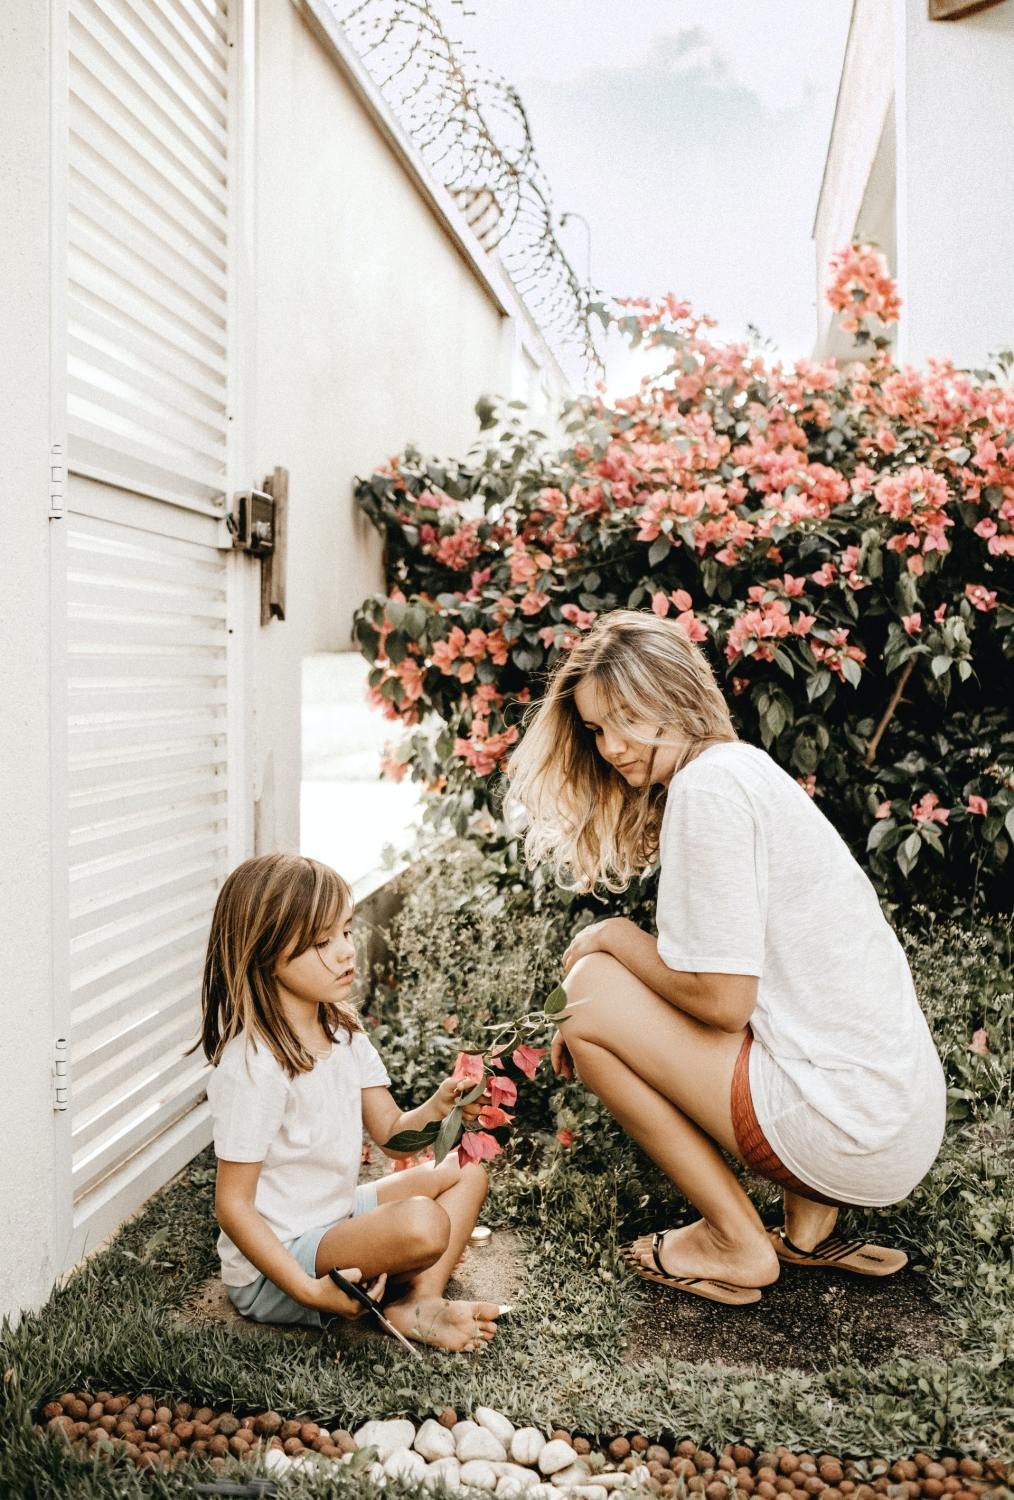 daughters of narcissistic mothers: symptoms